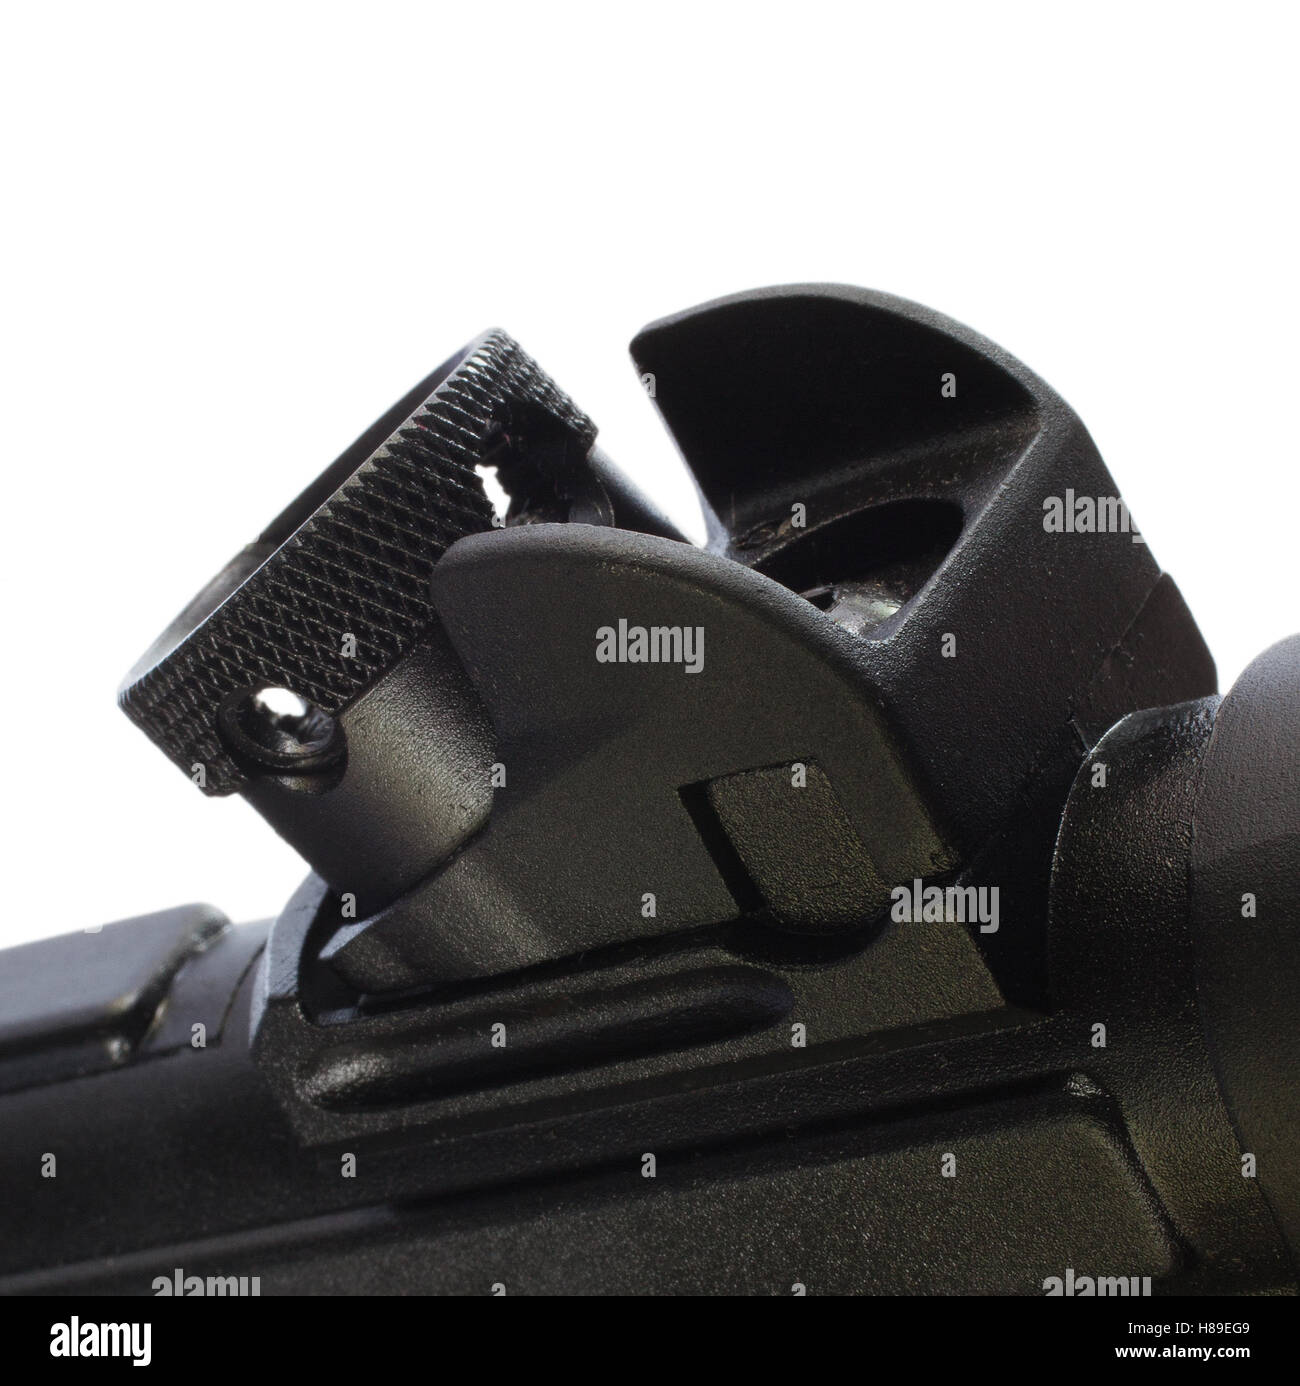 Rear sight on an assault rifle that rotates to different apertures - Stock Image